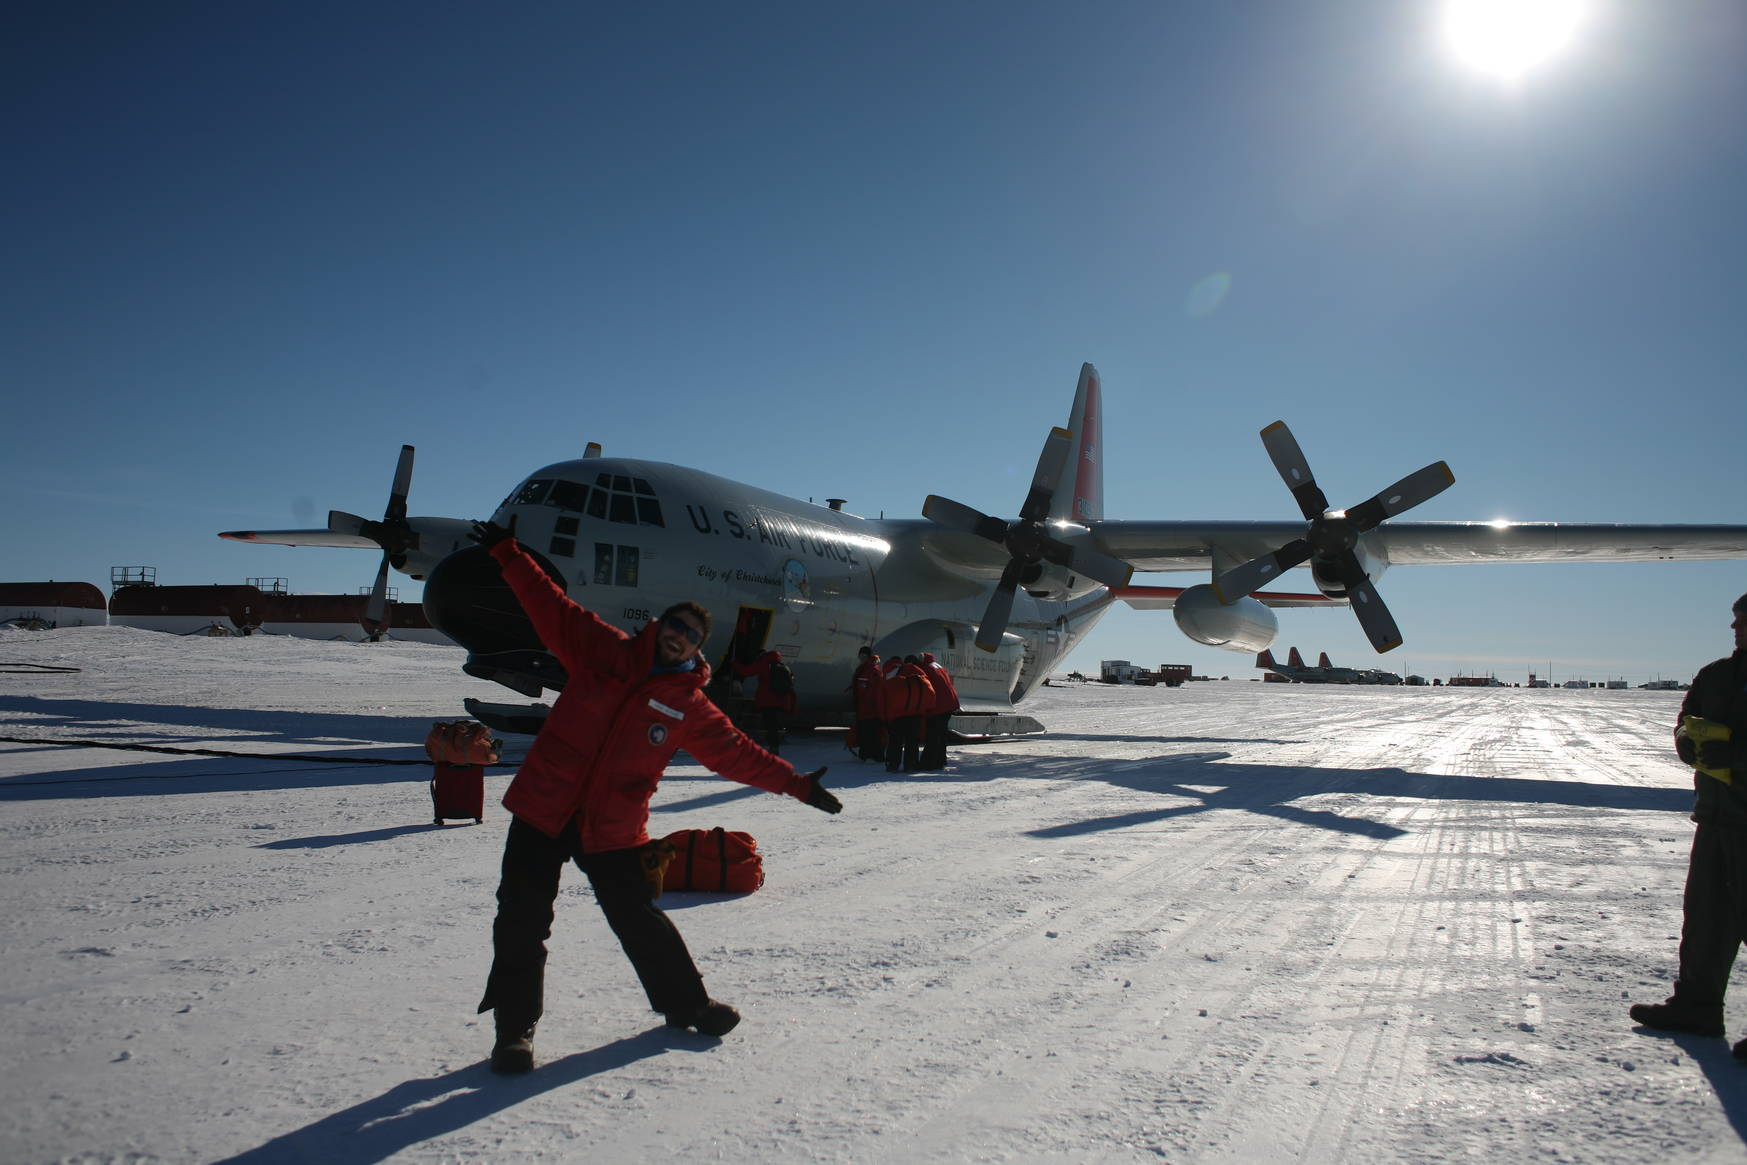 Excited, in front of the LC-130 ski-equipped Hercules.